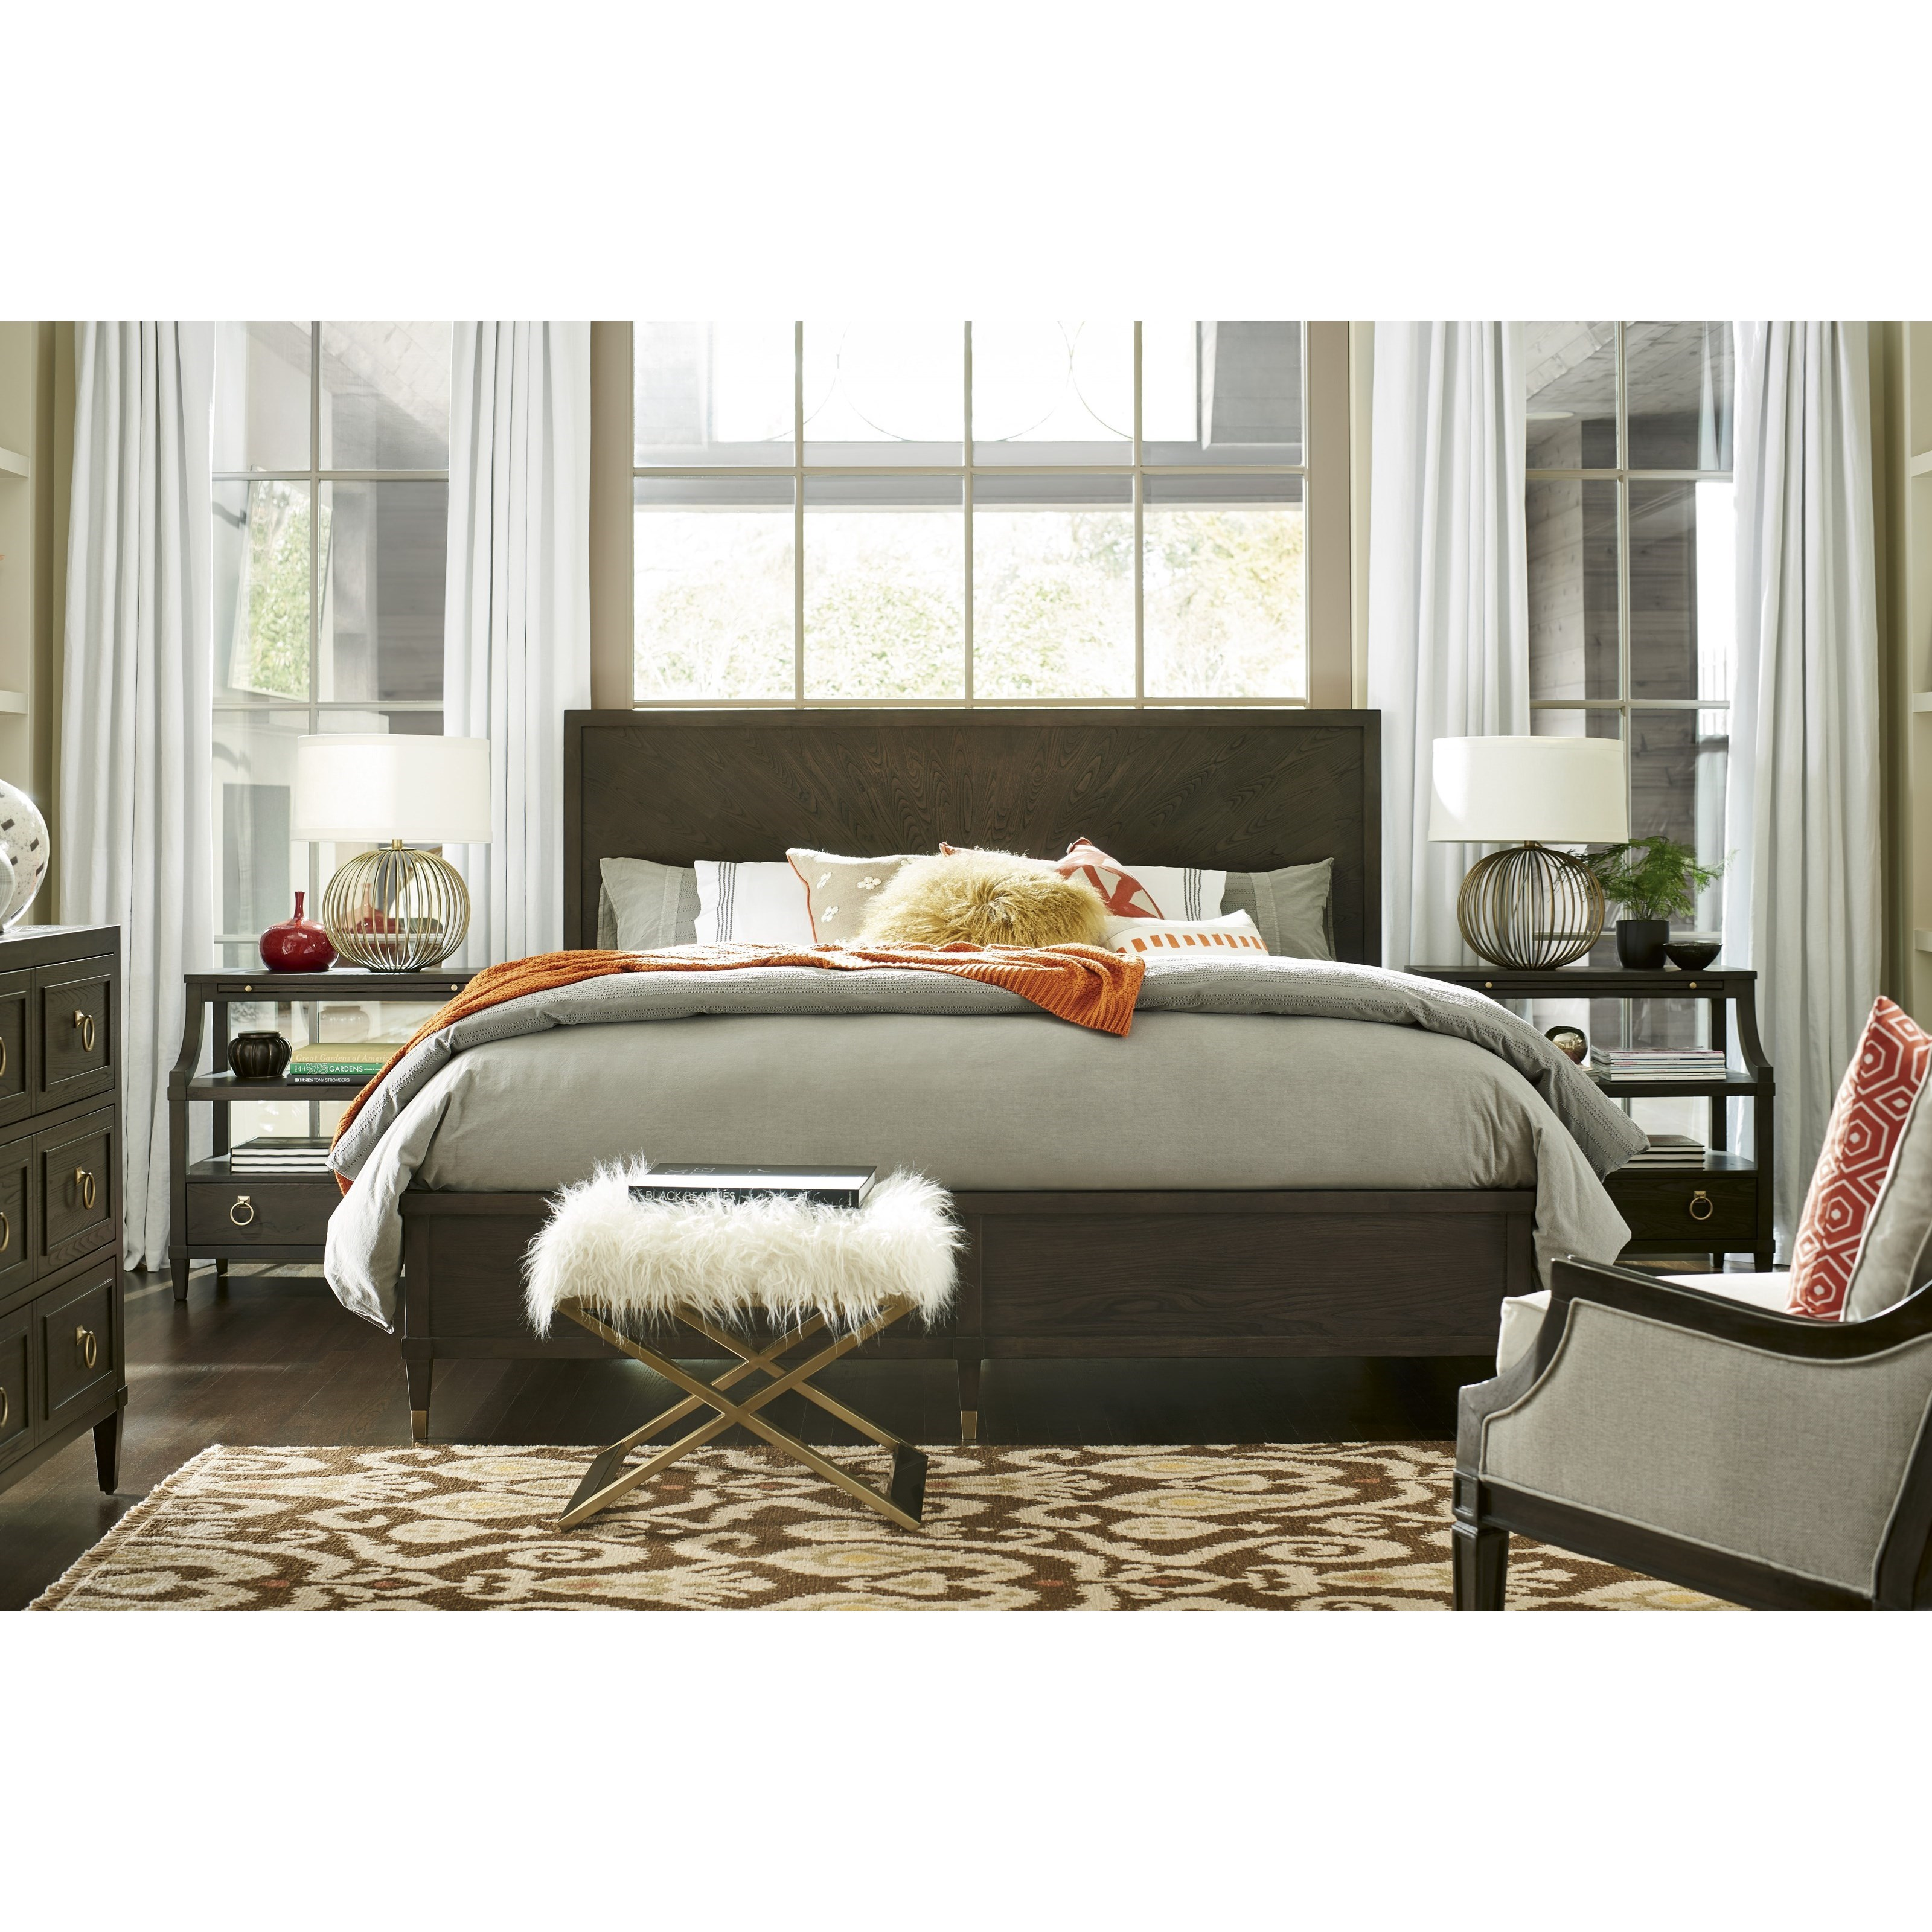 Soliloquy Queen Bedroom Group by Universal at Zak's Home